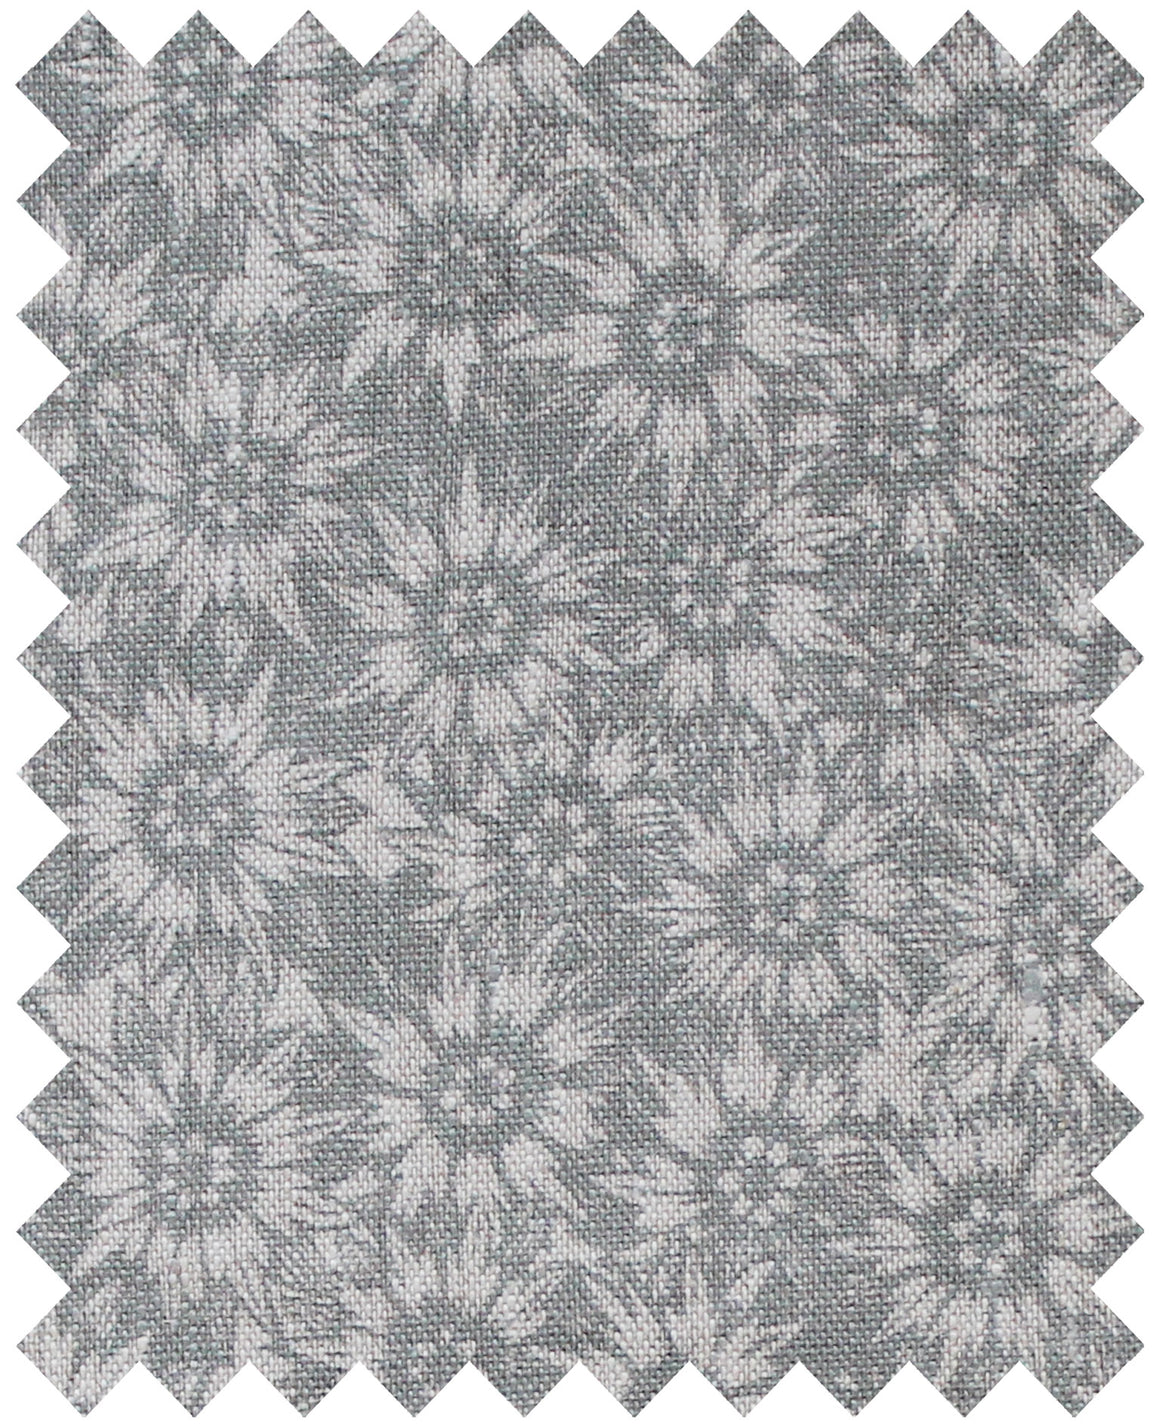 Summer Lea Manoir Grey - Natural Linen Swatch